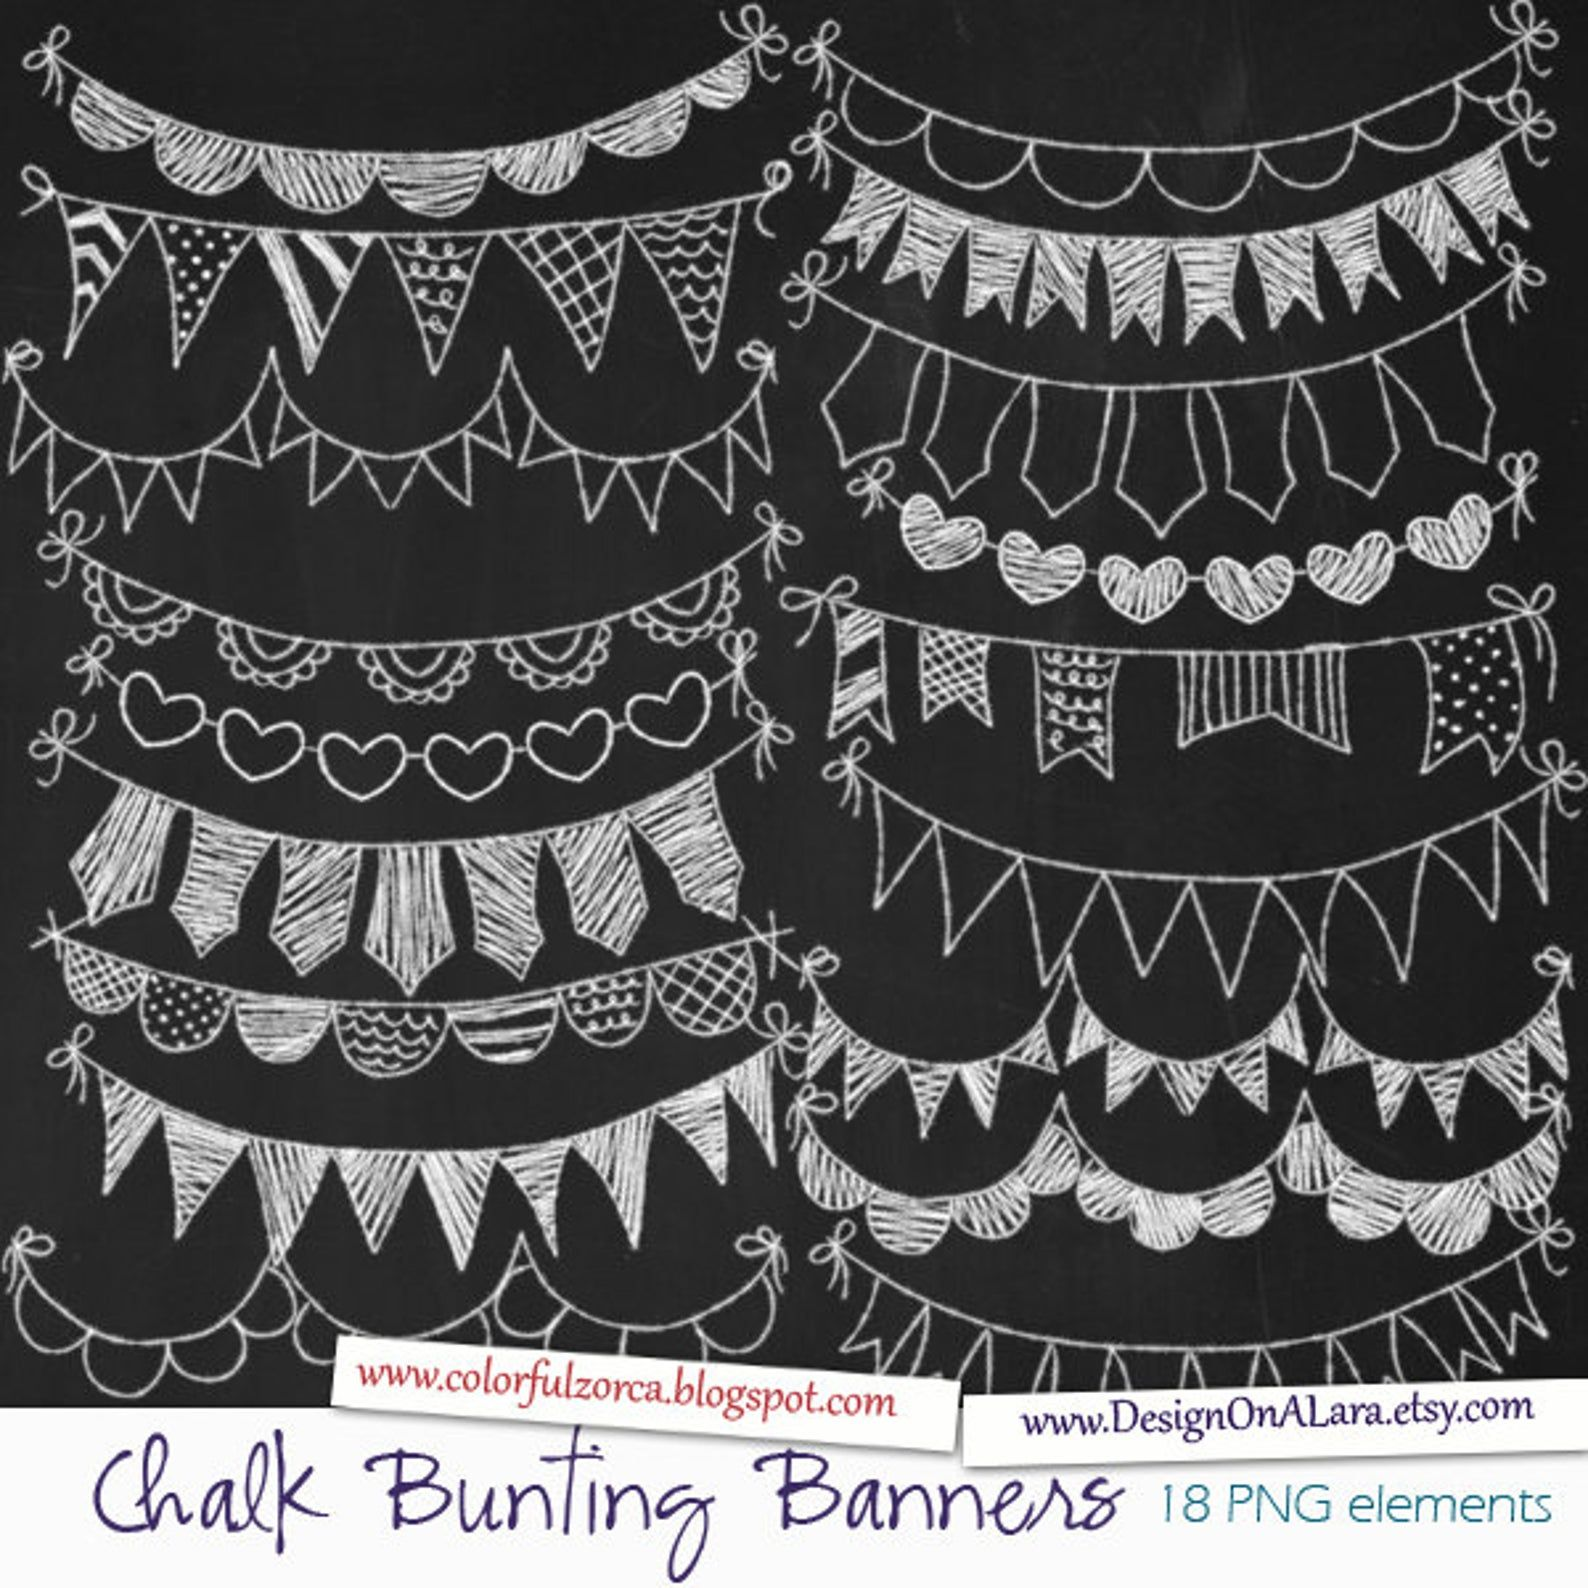 Chalk Bunting Banners Chalk Banners Clip Art Digital Etsy Banner Clip Art Banner Drawing How To Draw Hands